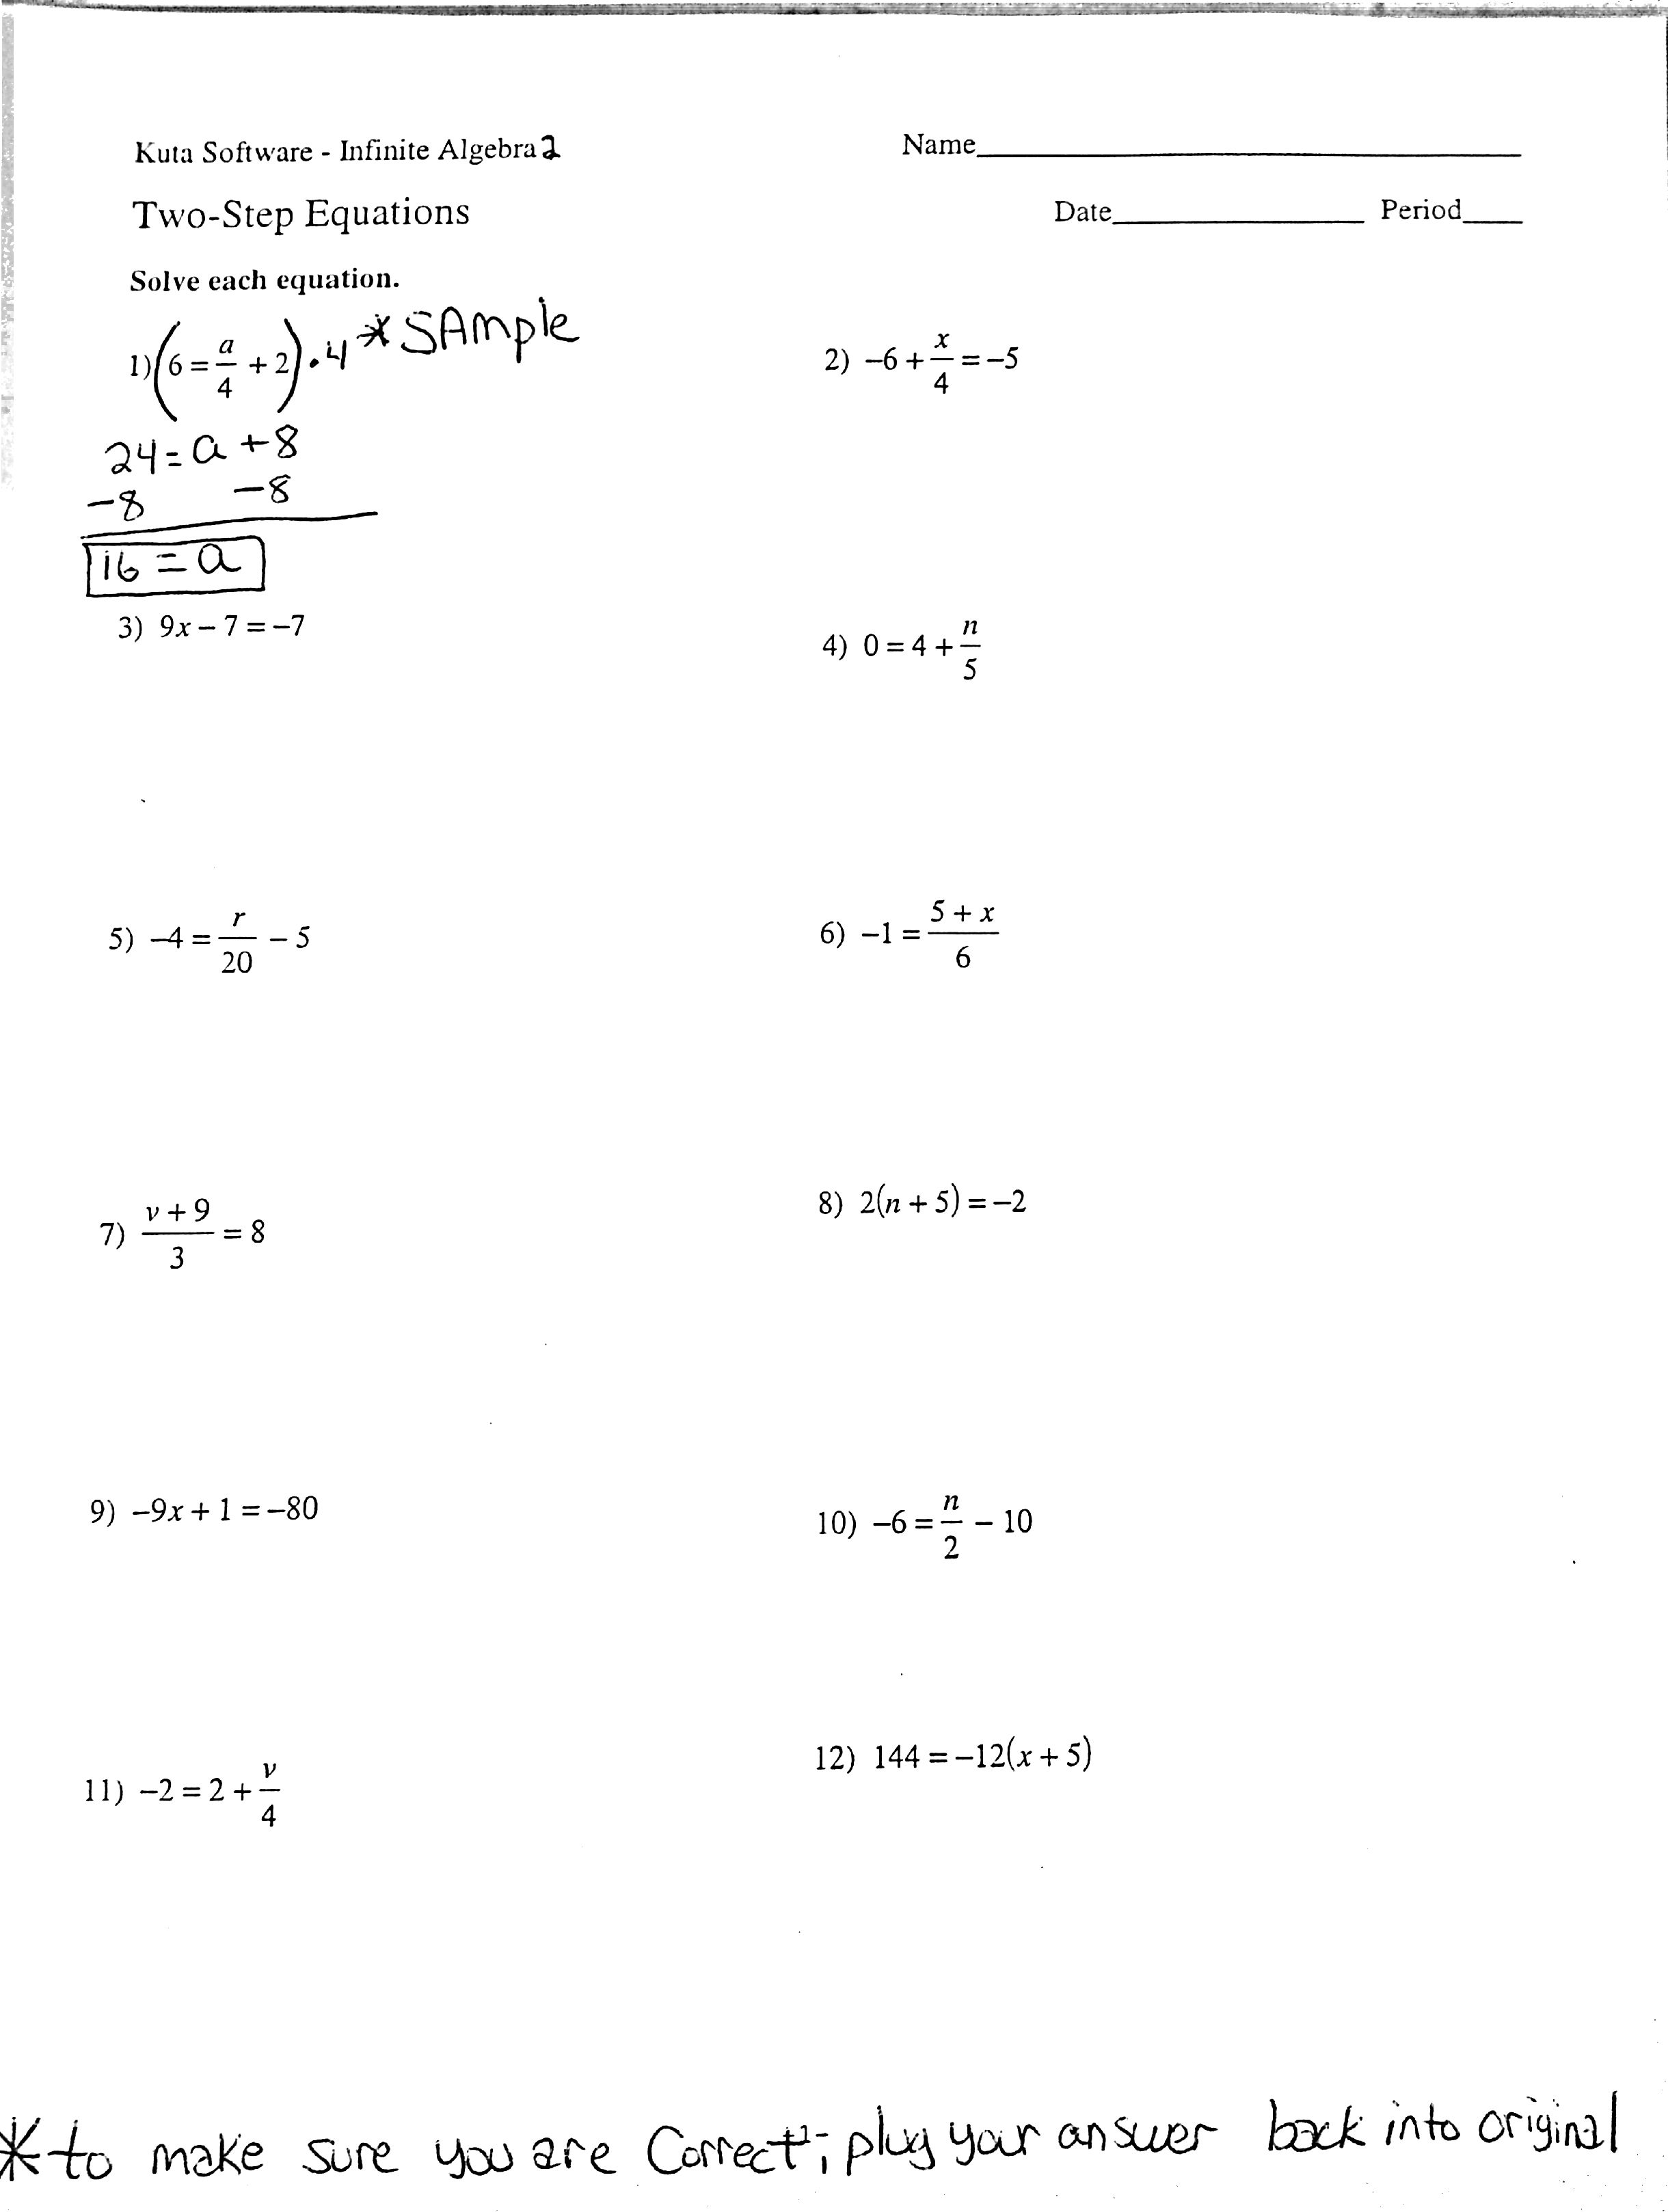 worksheet Algebra 1 Worksheets With Answers printables 2 step algebra equations worksheets tempojs thousands one worksheet answers abtd answers